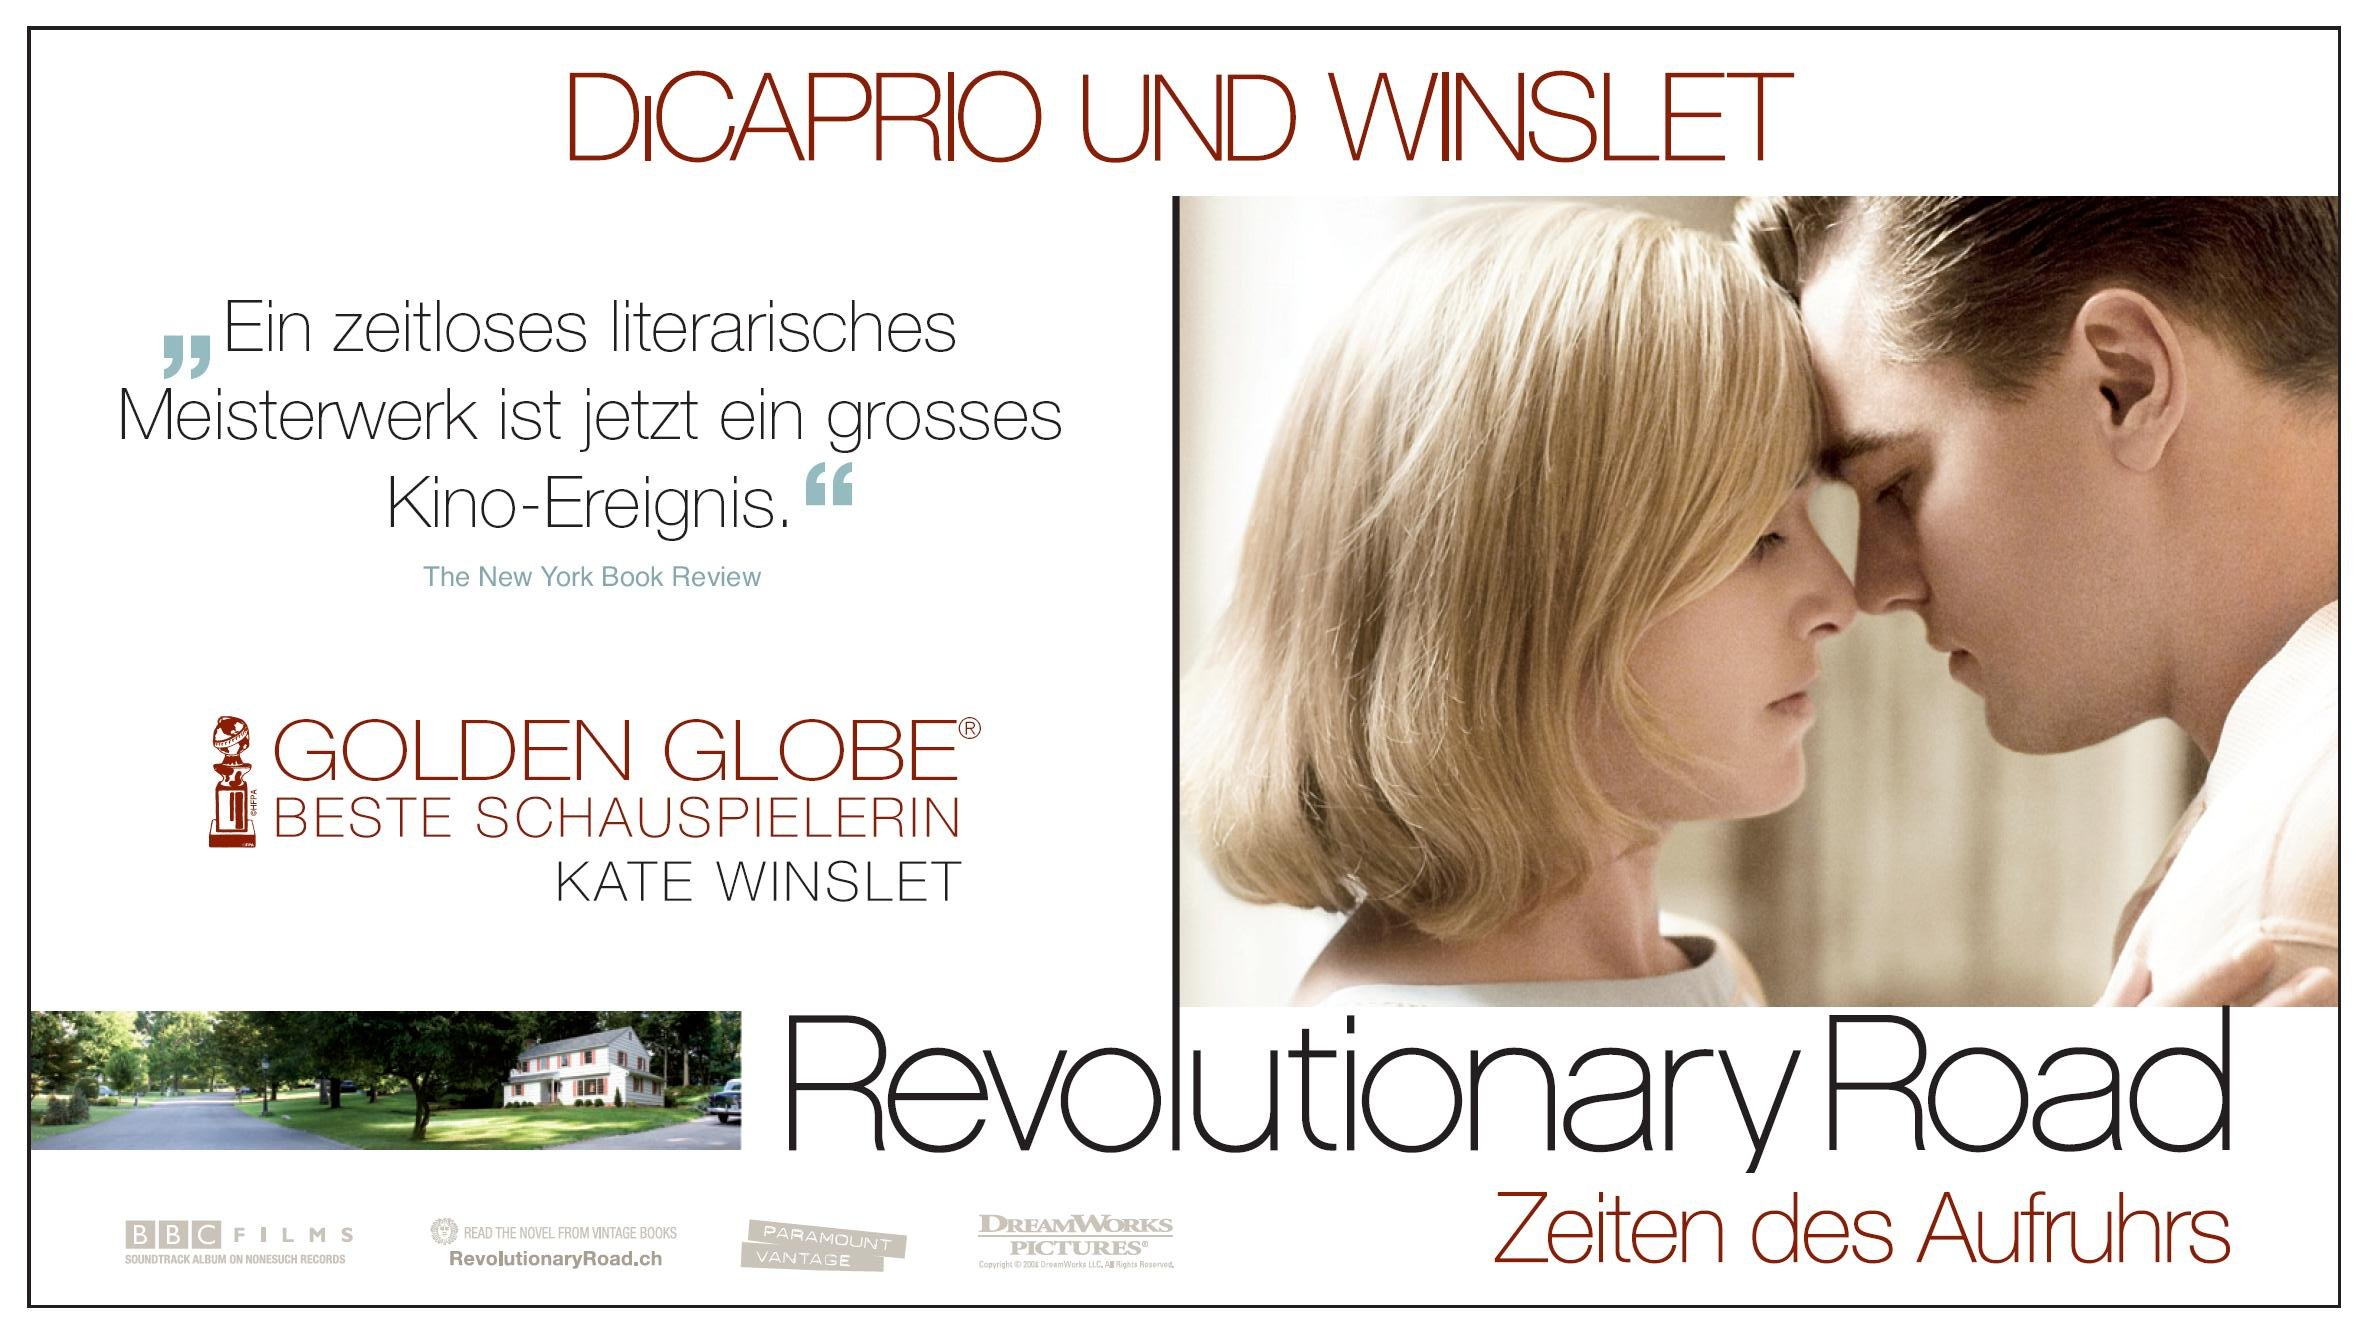 revolutionary road film essay revolutionary road study guide analysis gradesaver